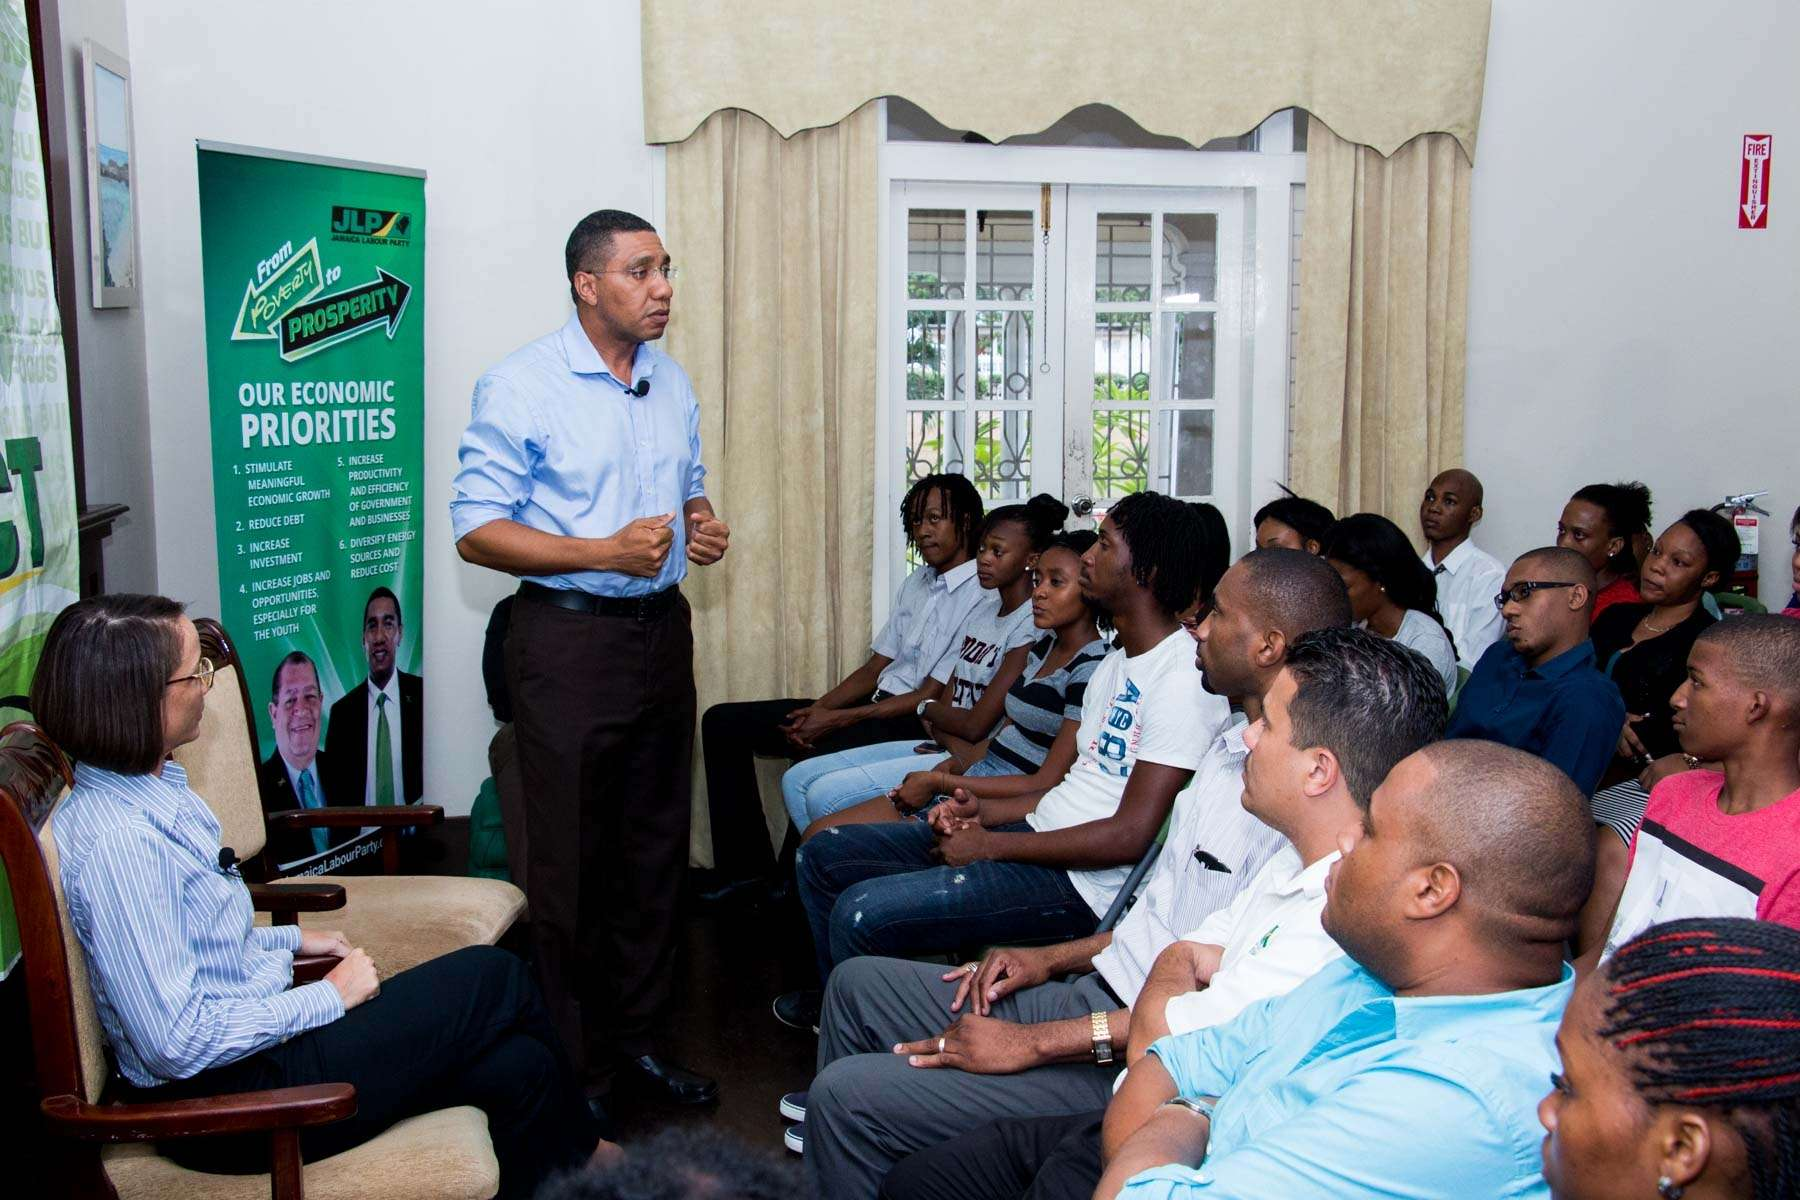 Holness Targeting Youth Vote